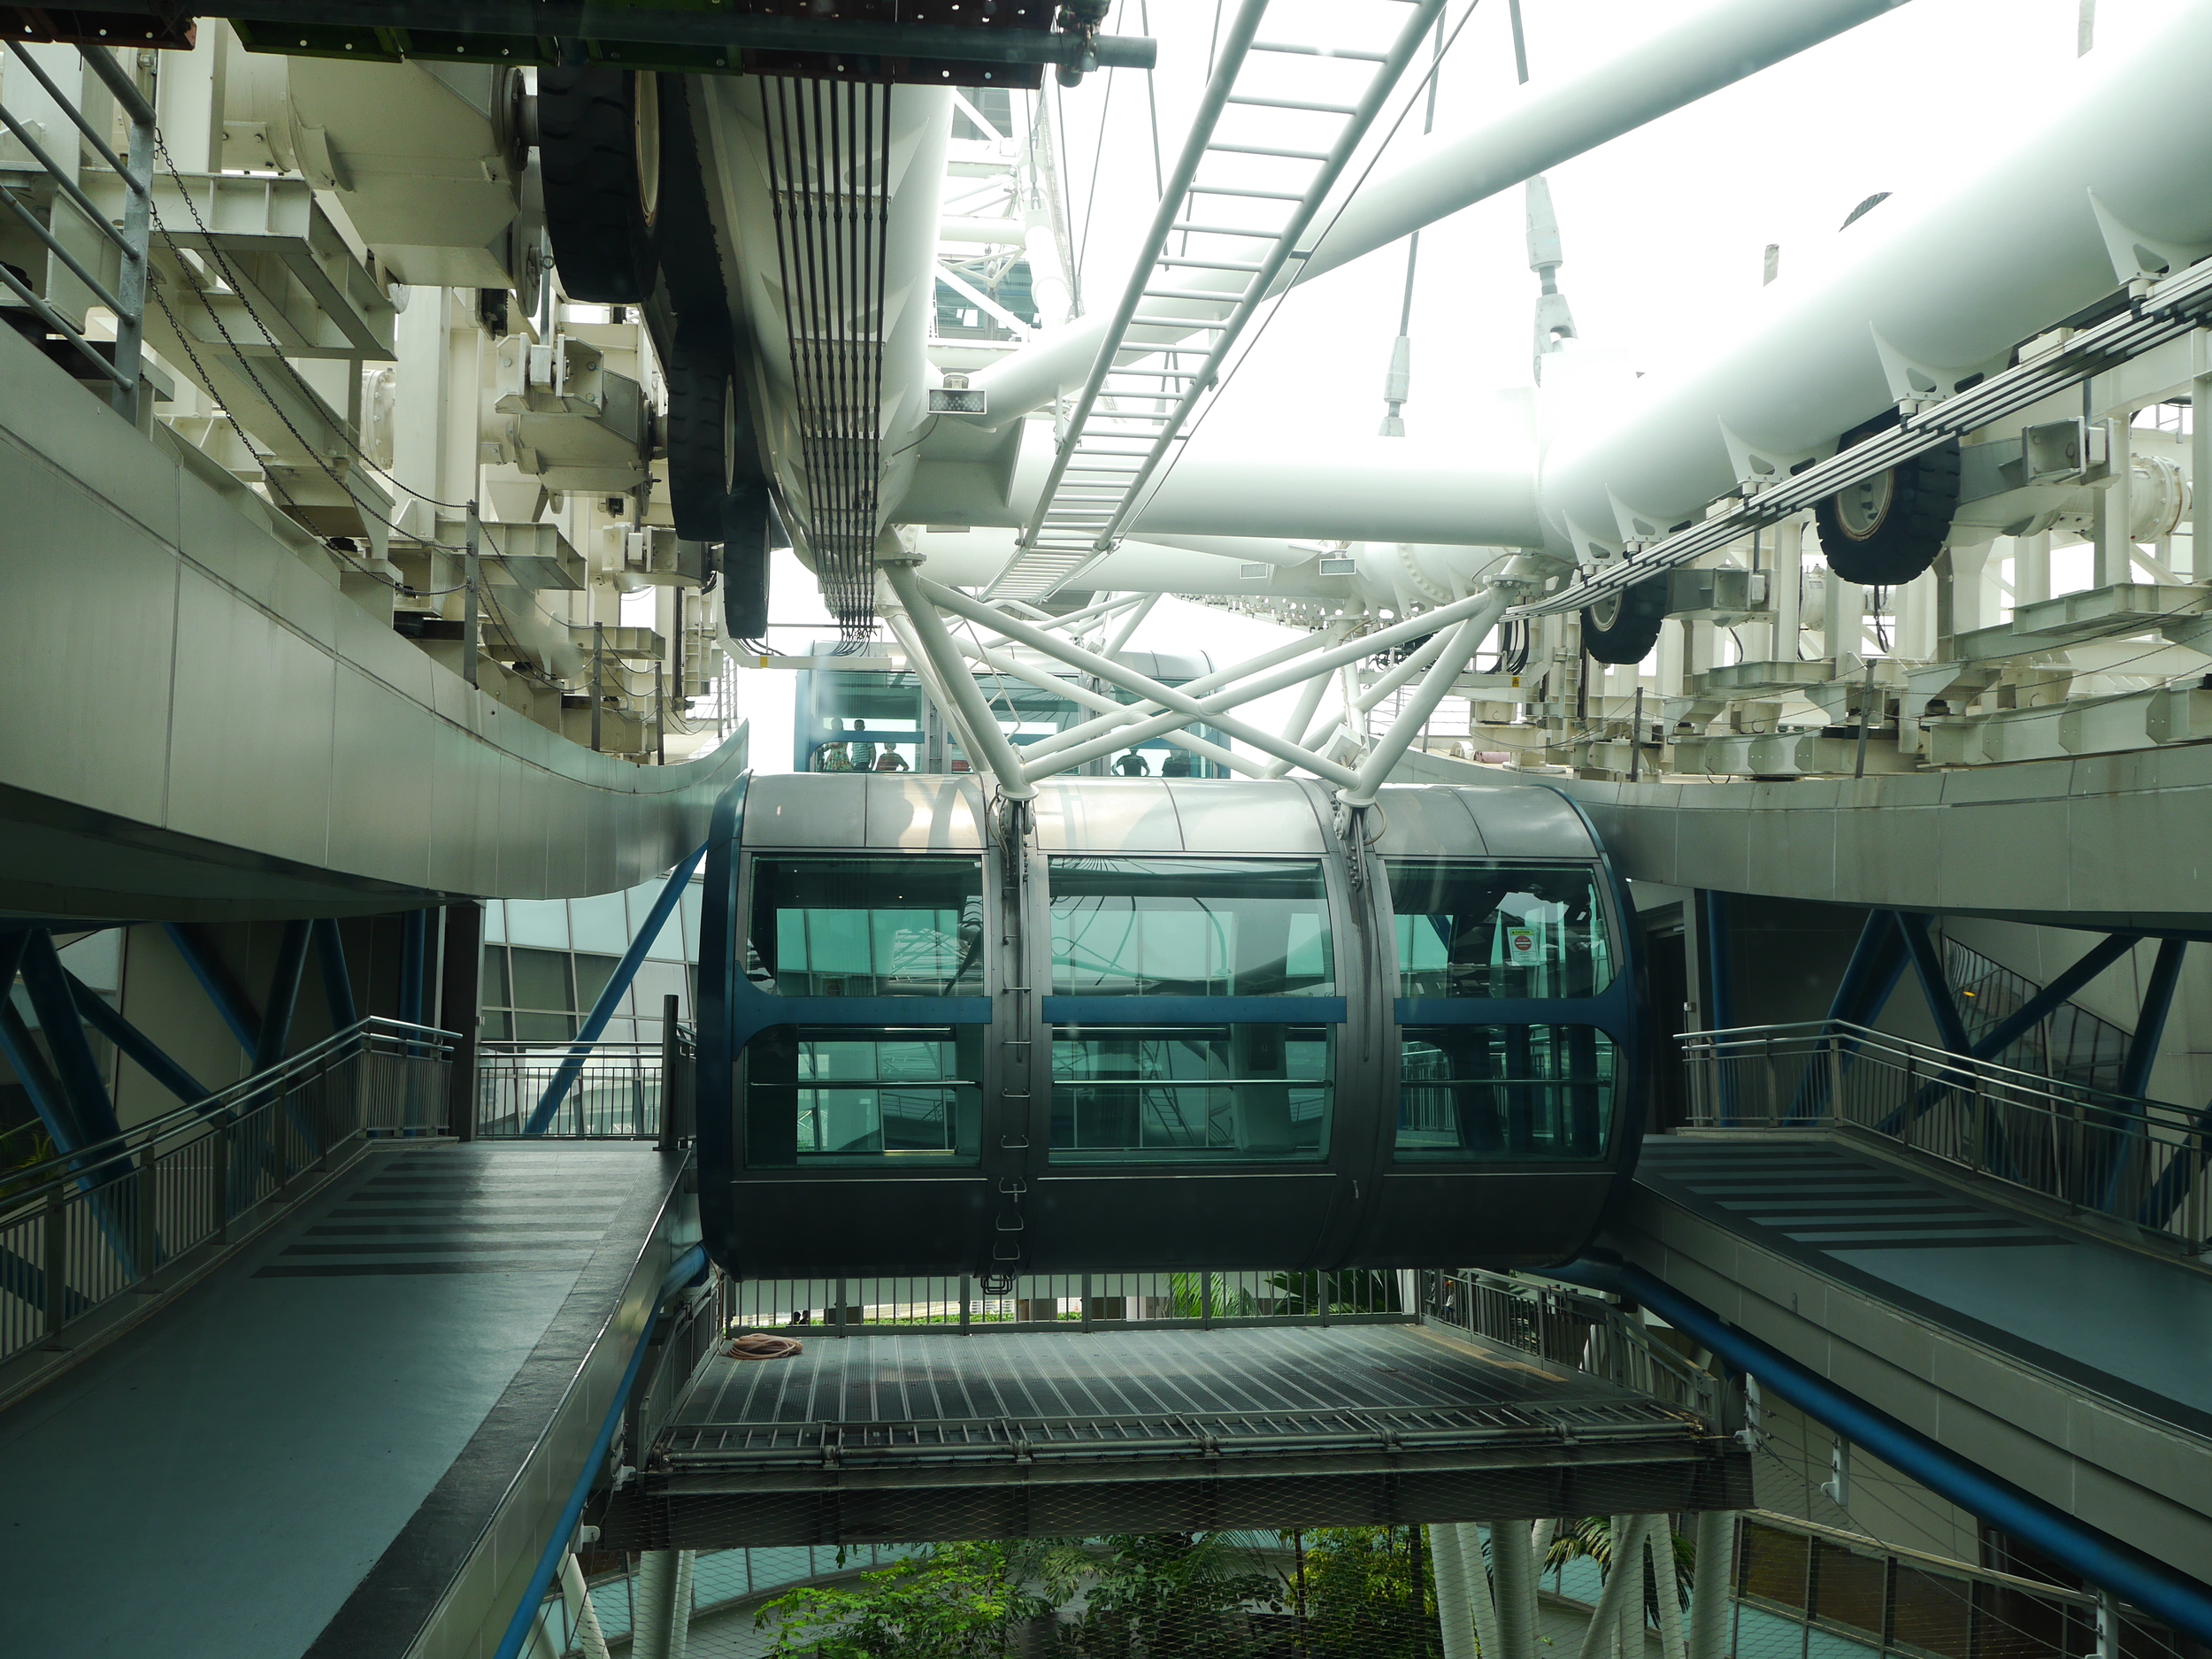 The capsules you ride in. Thankfully not very crowded.